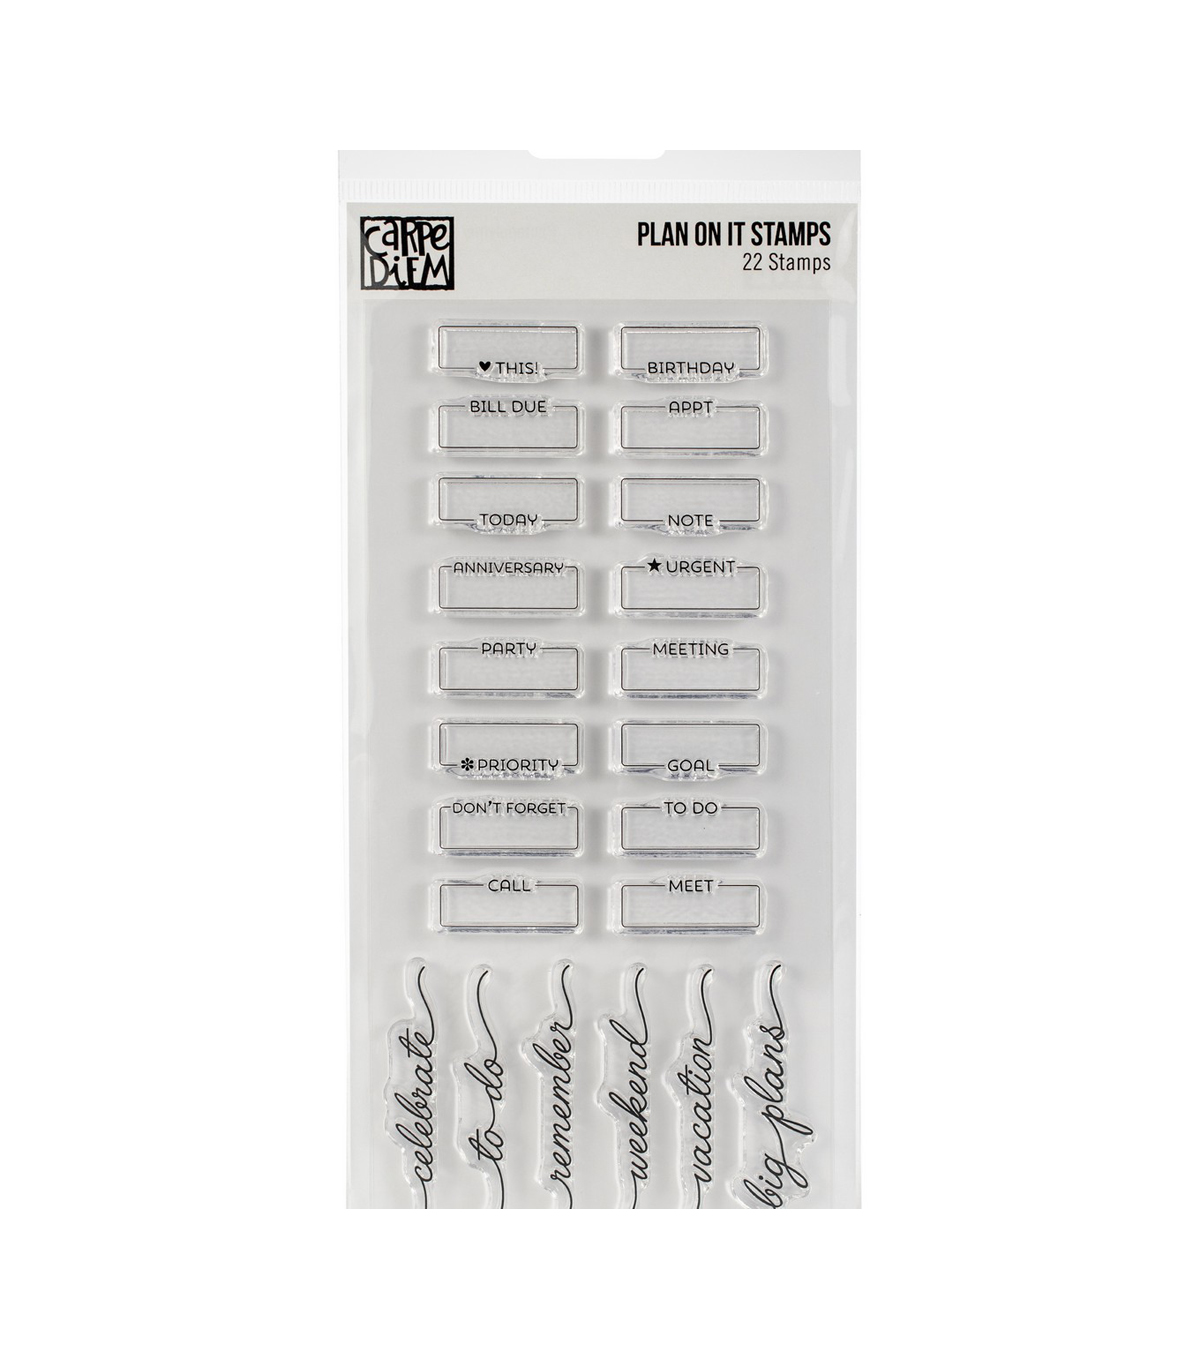 Simple Stories Carpe Diem 22 pk Photopolymer Clear Stamps-Plan on It